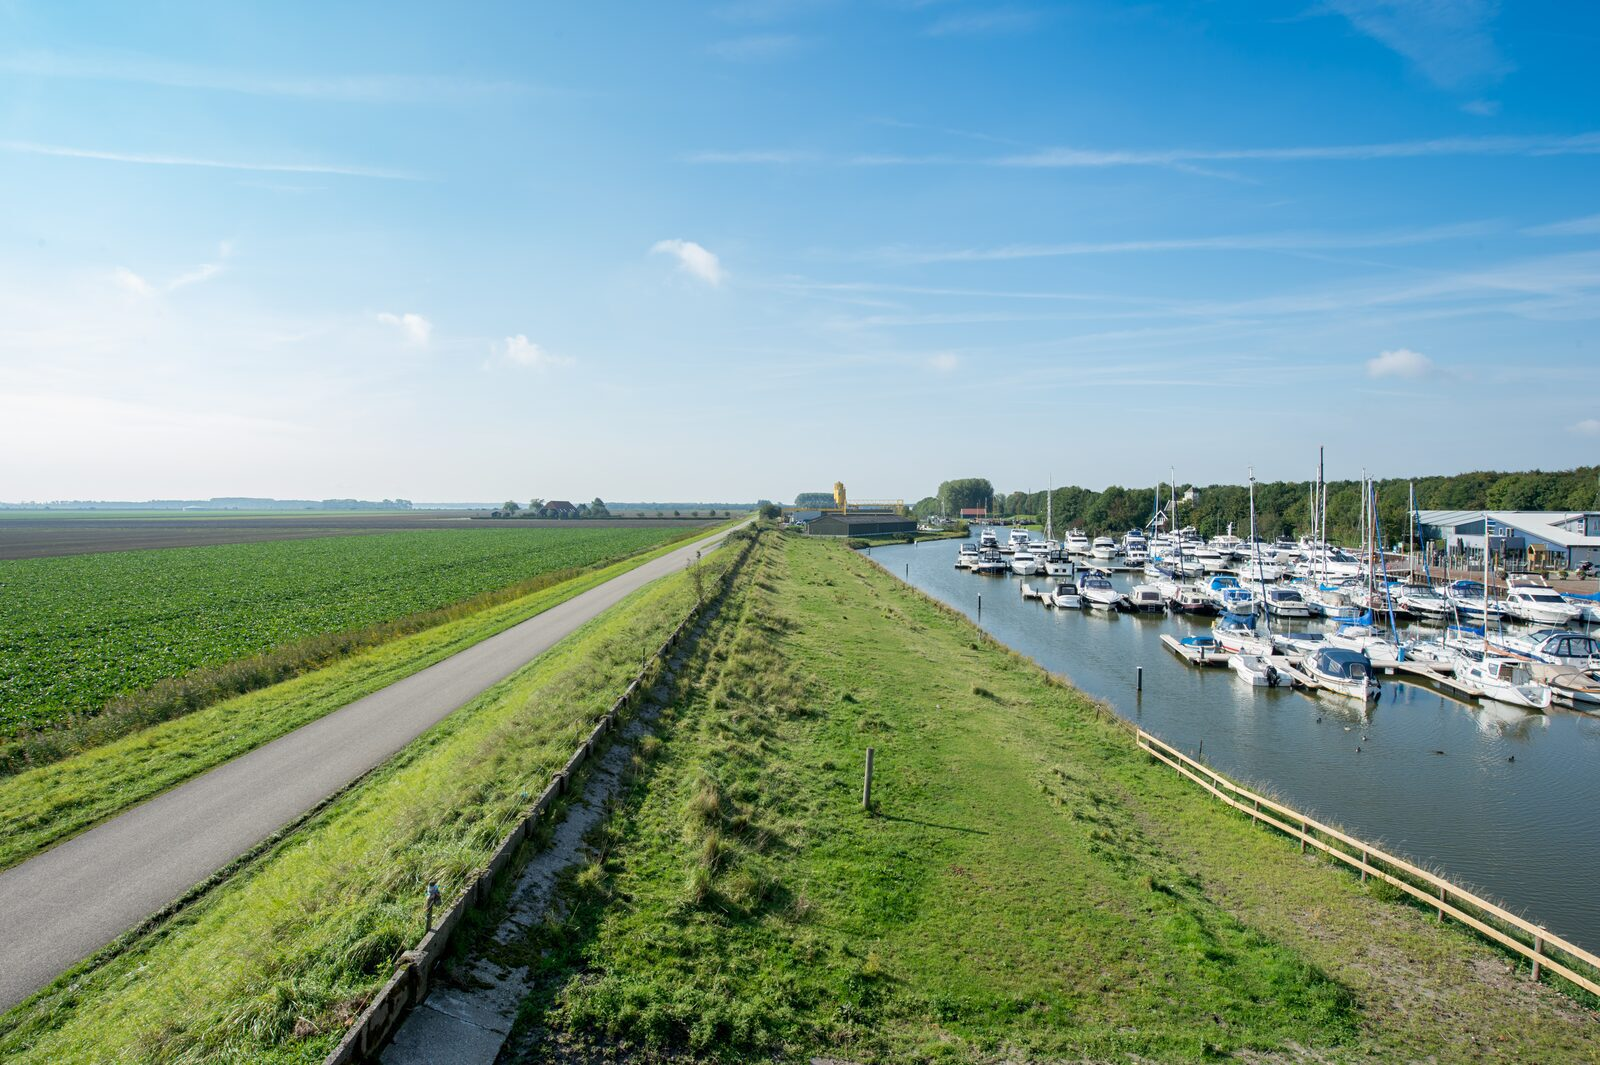 Luxurious apartments in Zeeland along the Veerse Meer